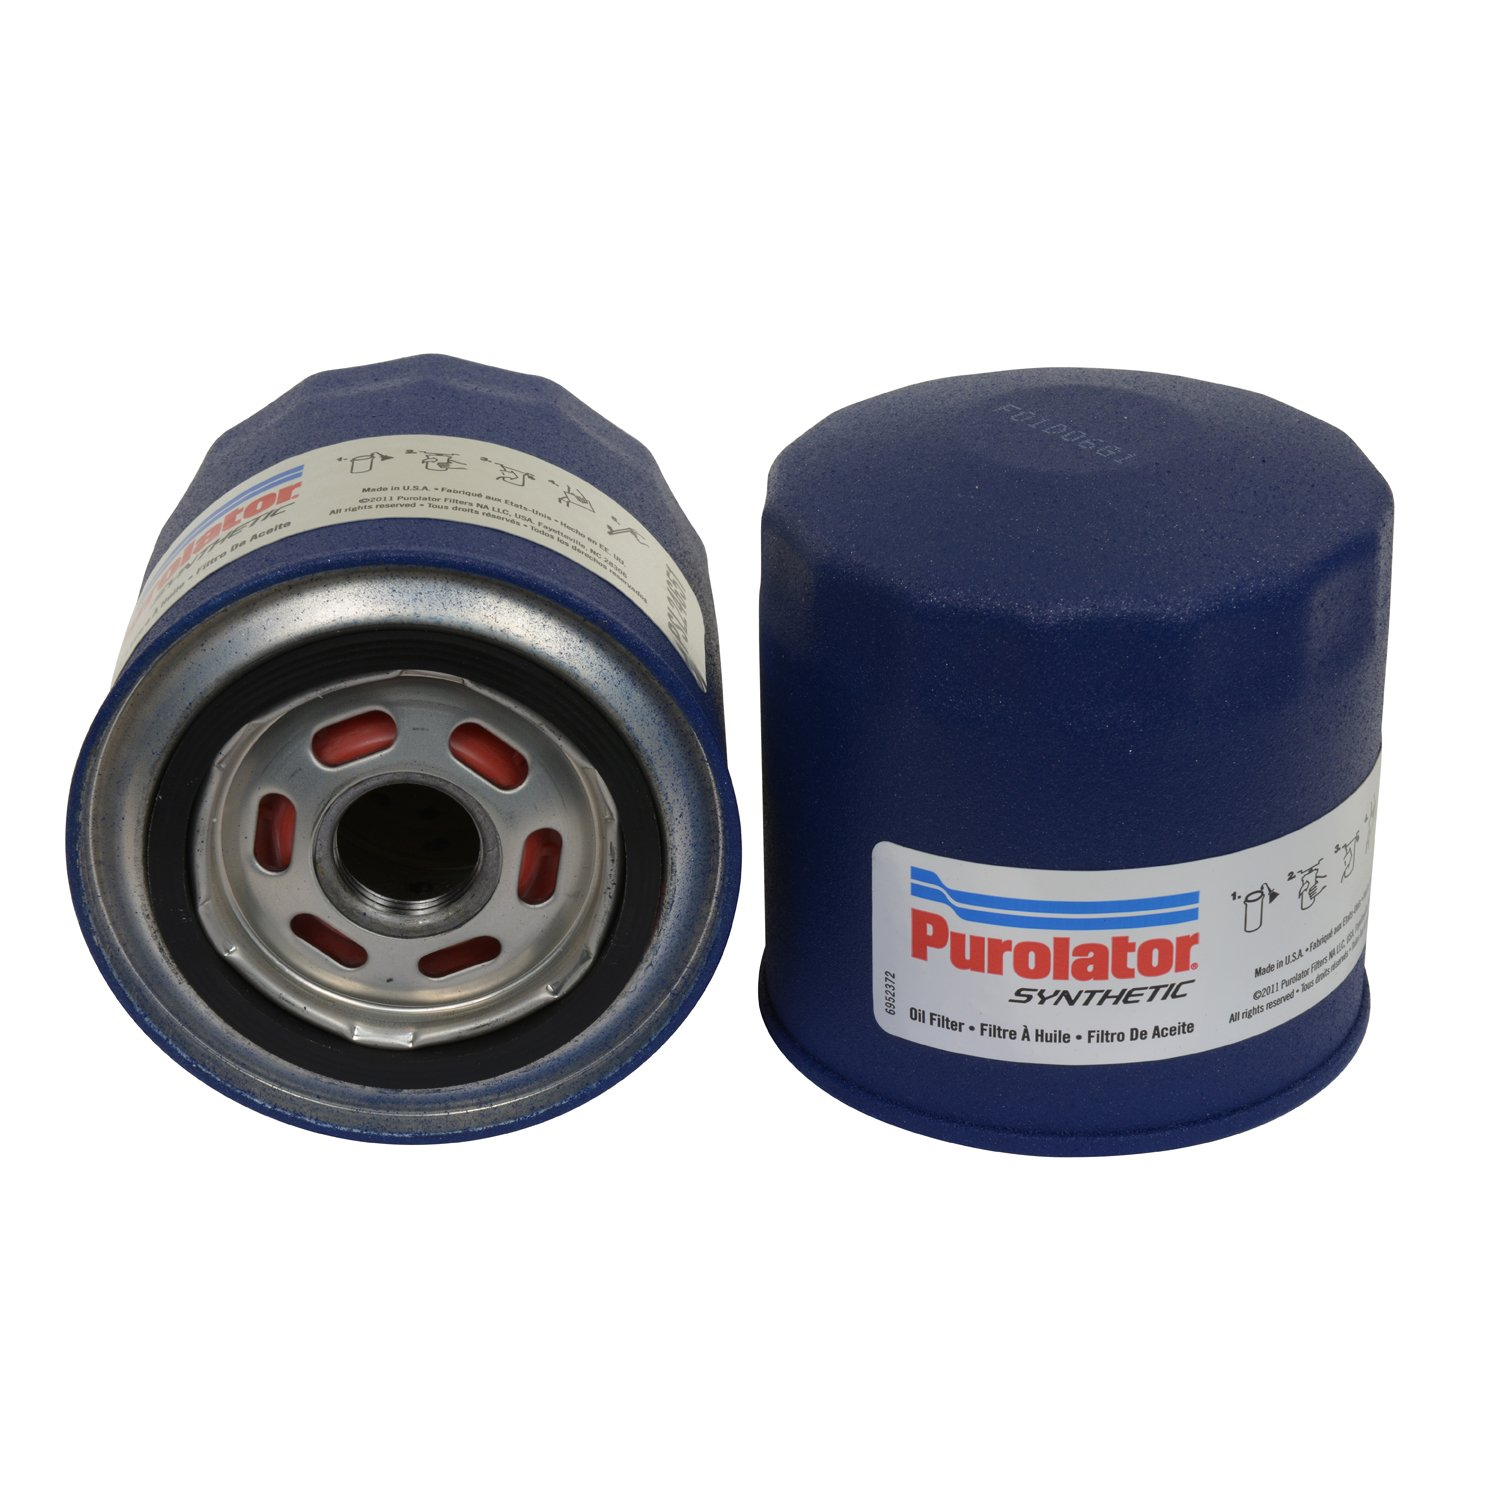 Recommend An Oil Filter